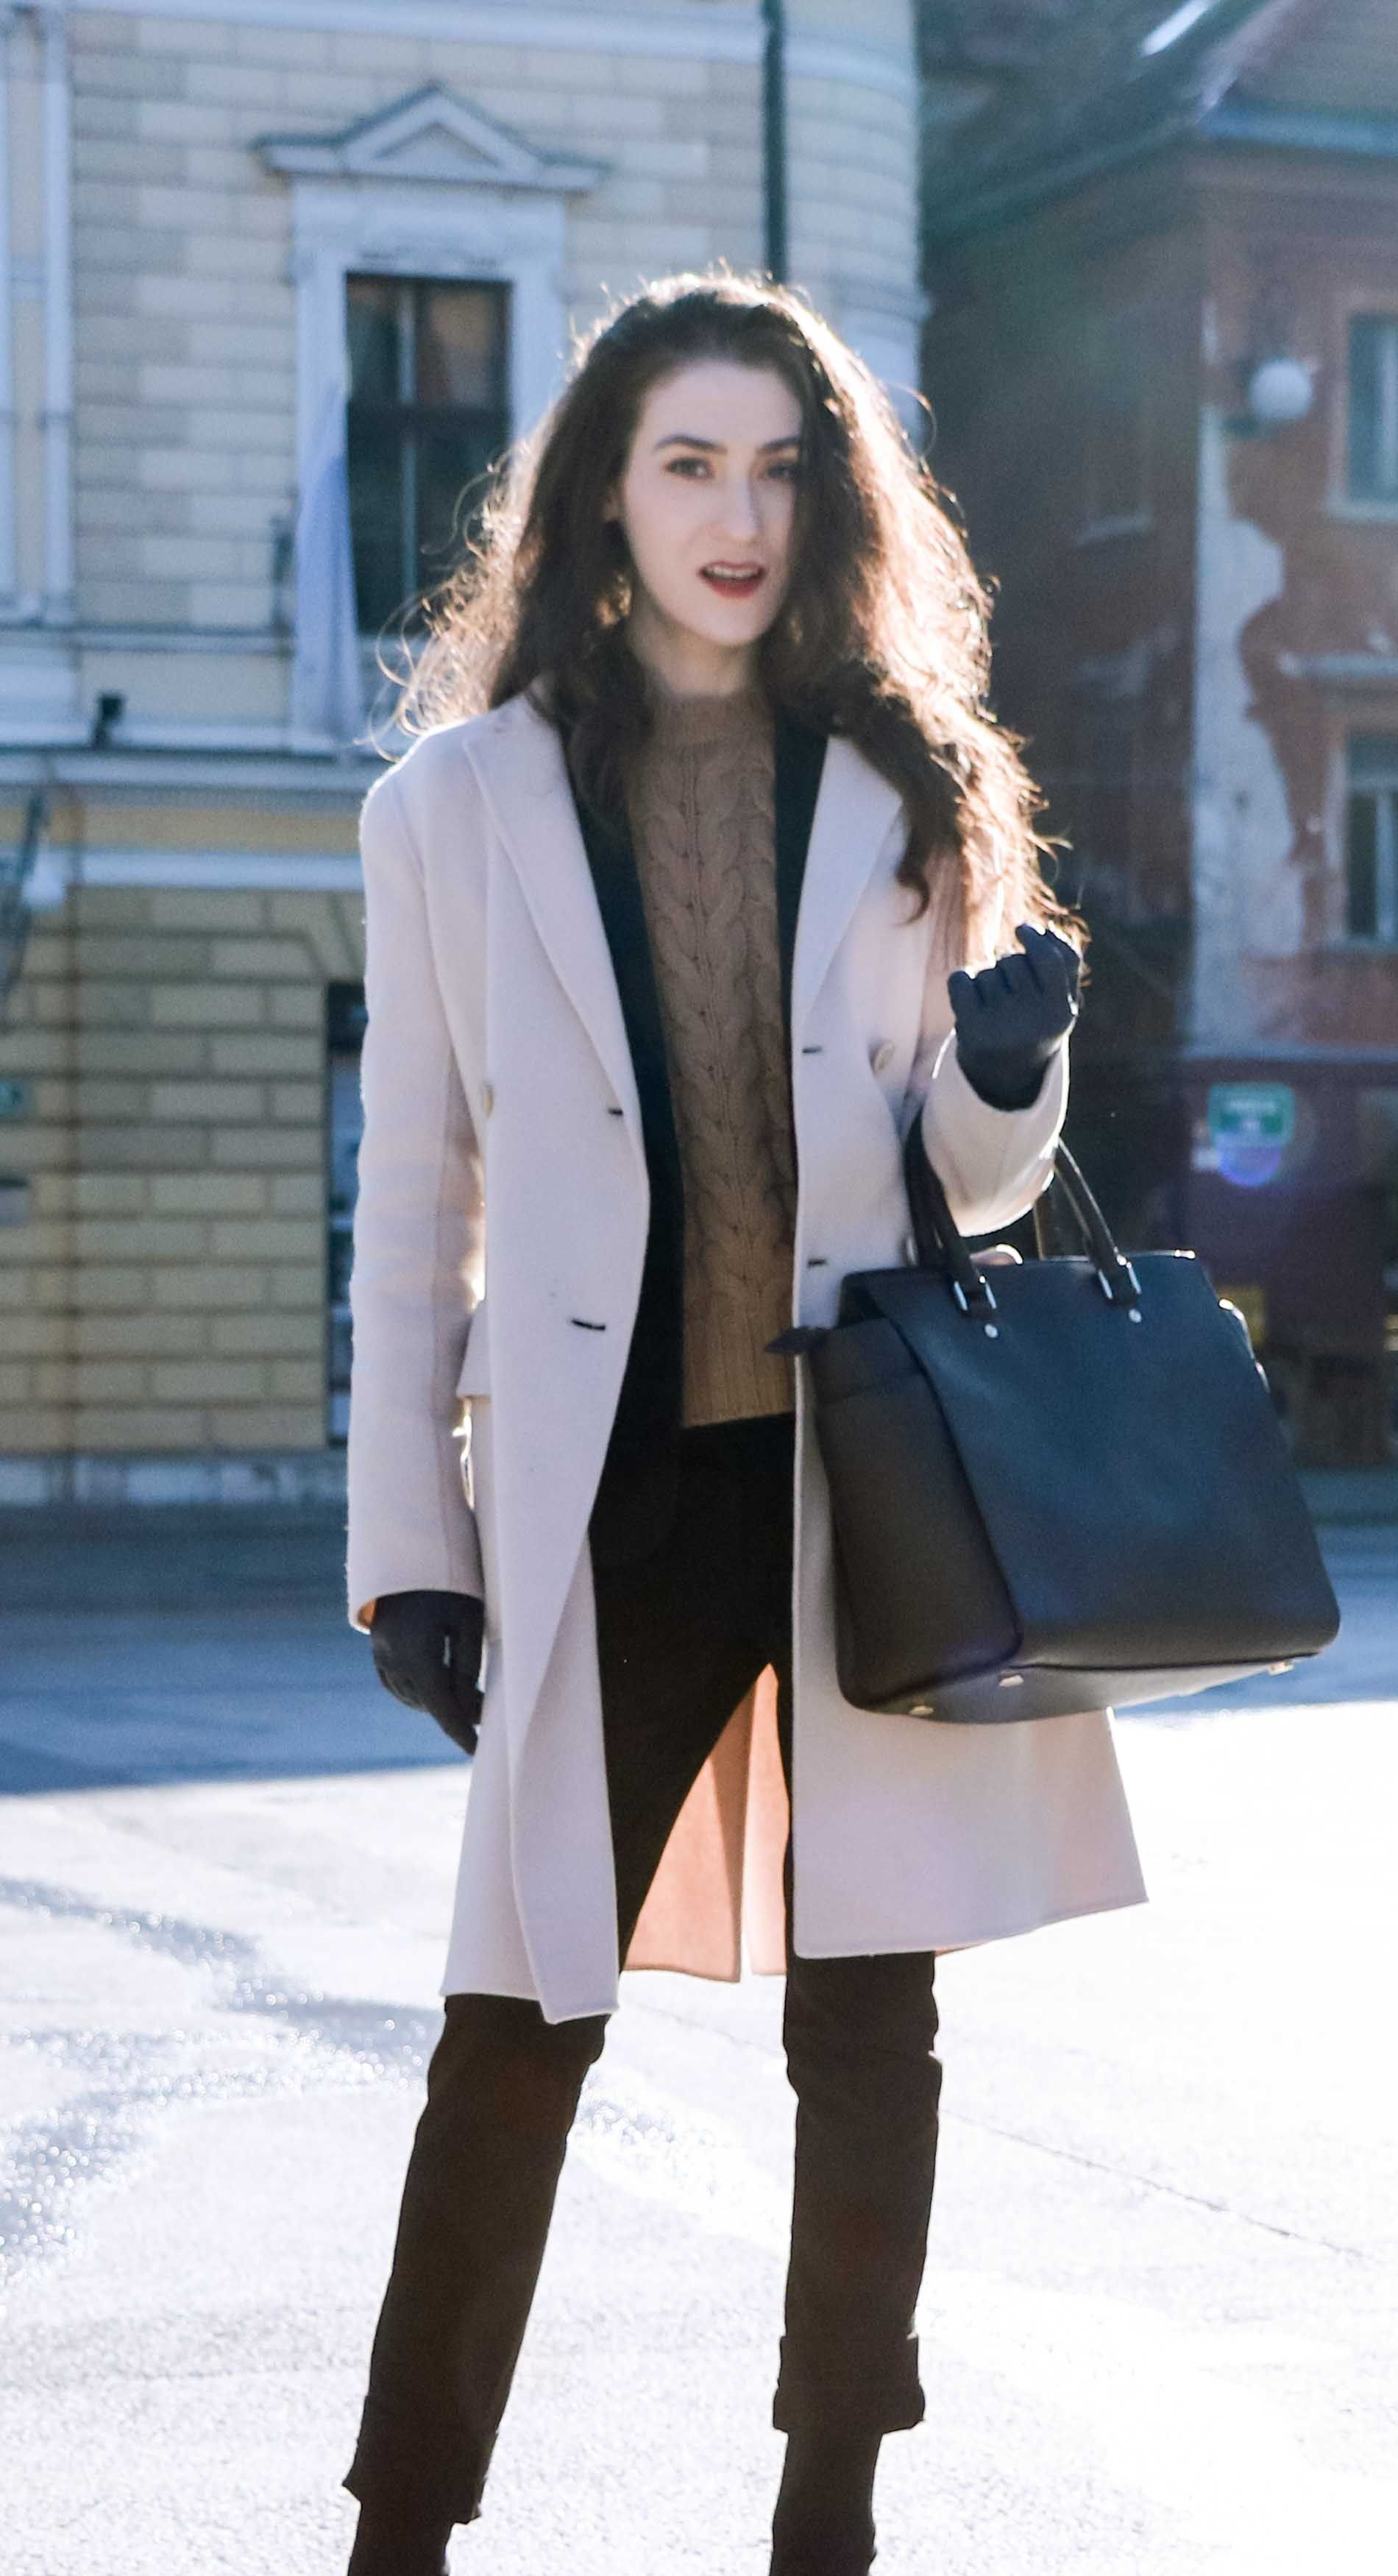 Fashion Blogger Veronika Lipar of Brunette from Wall Street on how to style  sweater for work this winter d0b56d2d8efe4